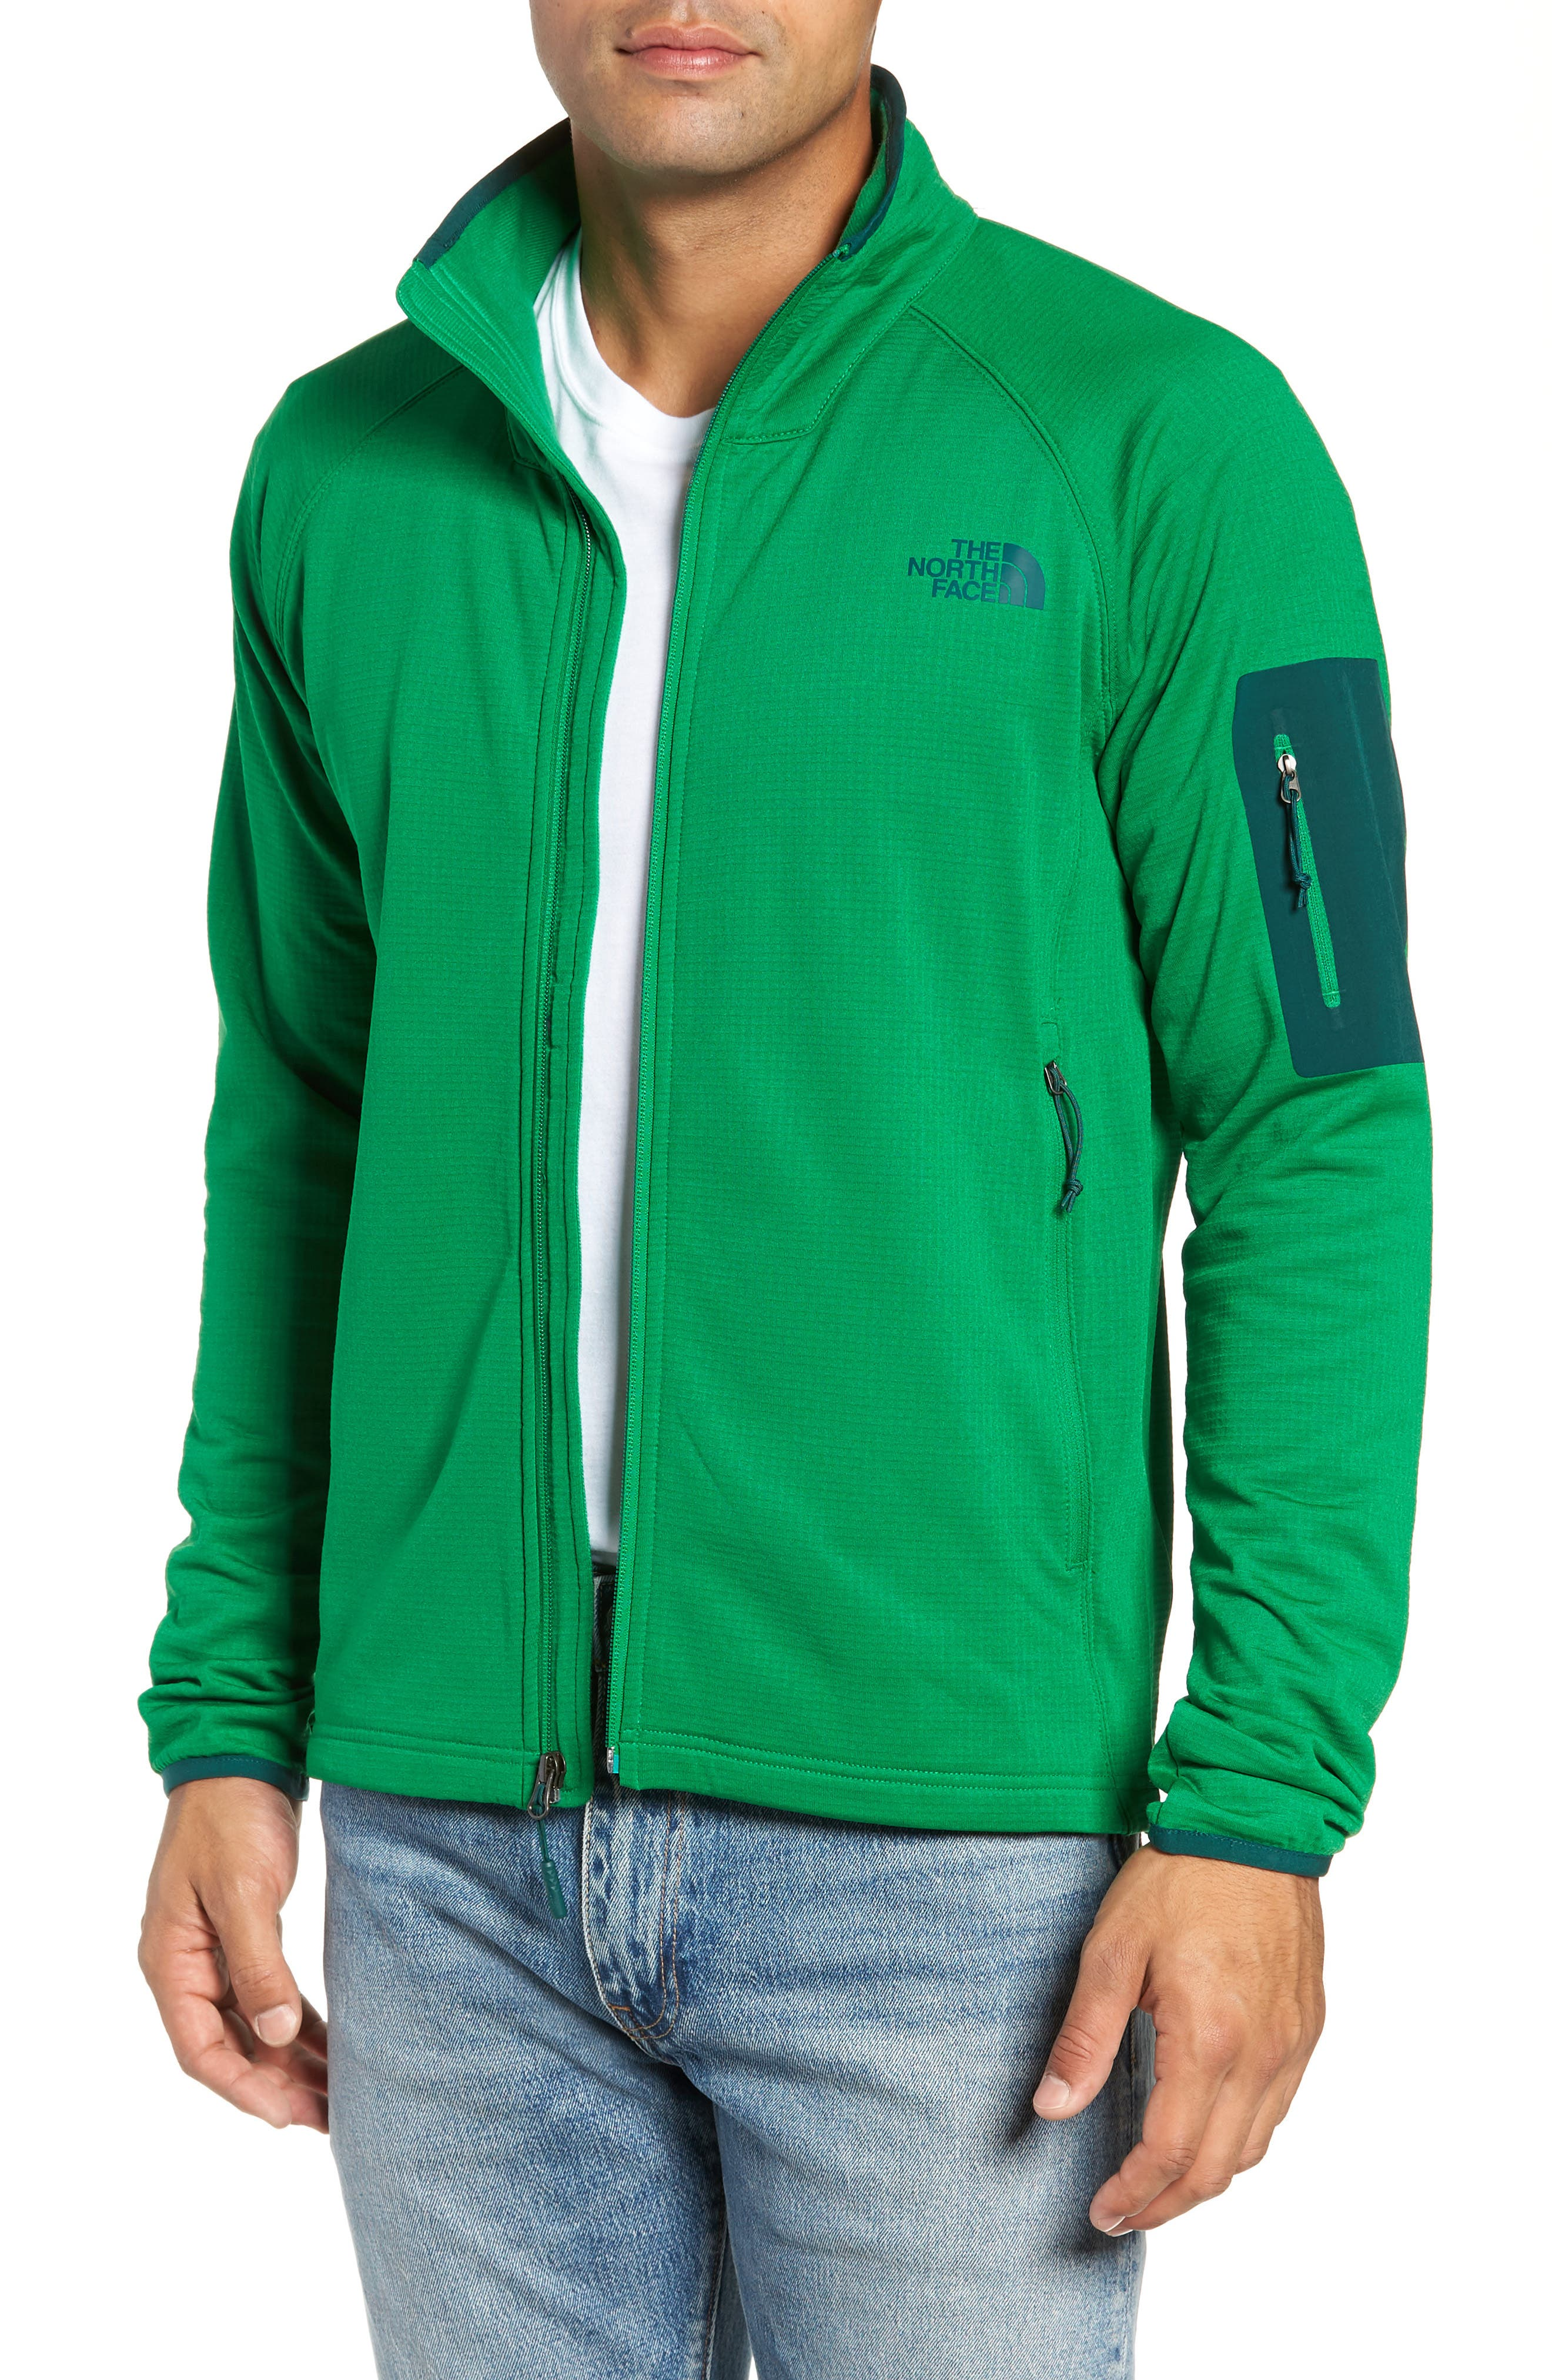 THE NORTH FACE,                             Borod Jacket,                             Main thumbnail 1, color,                             310